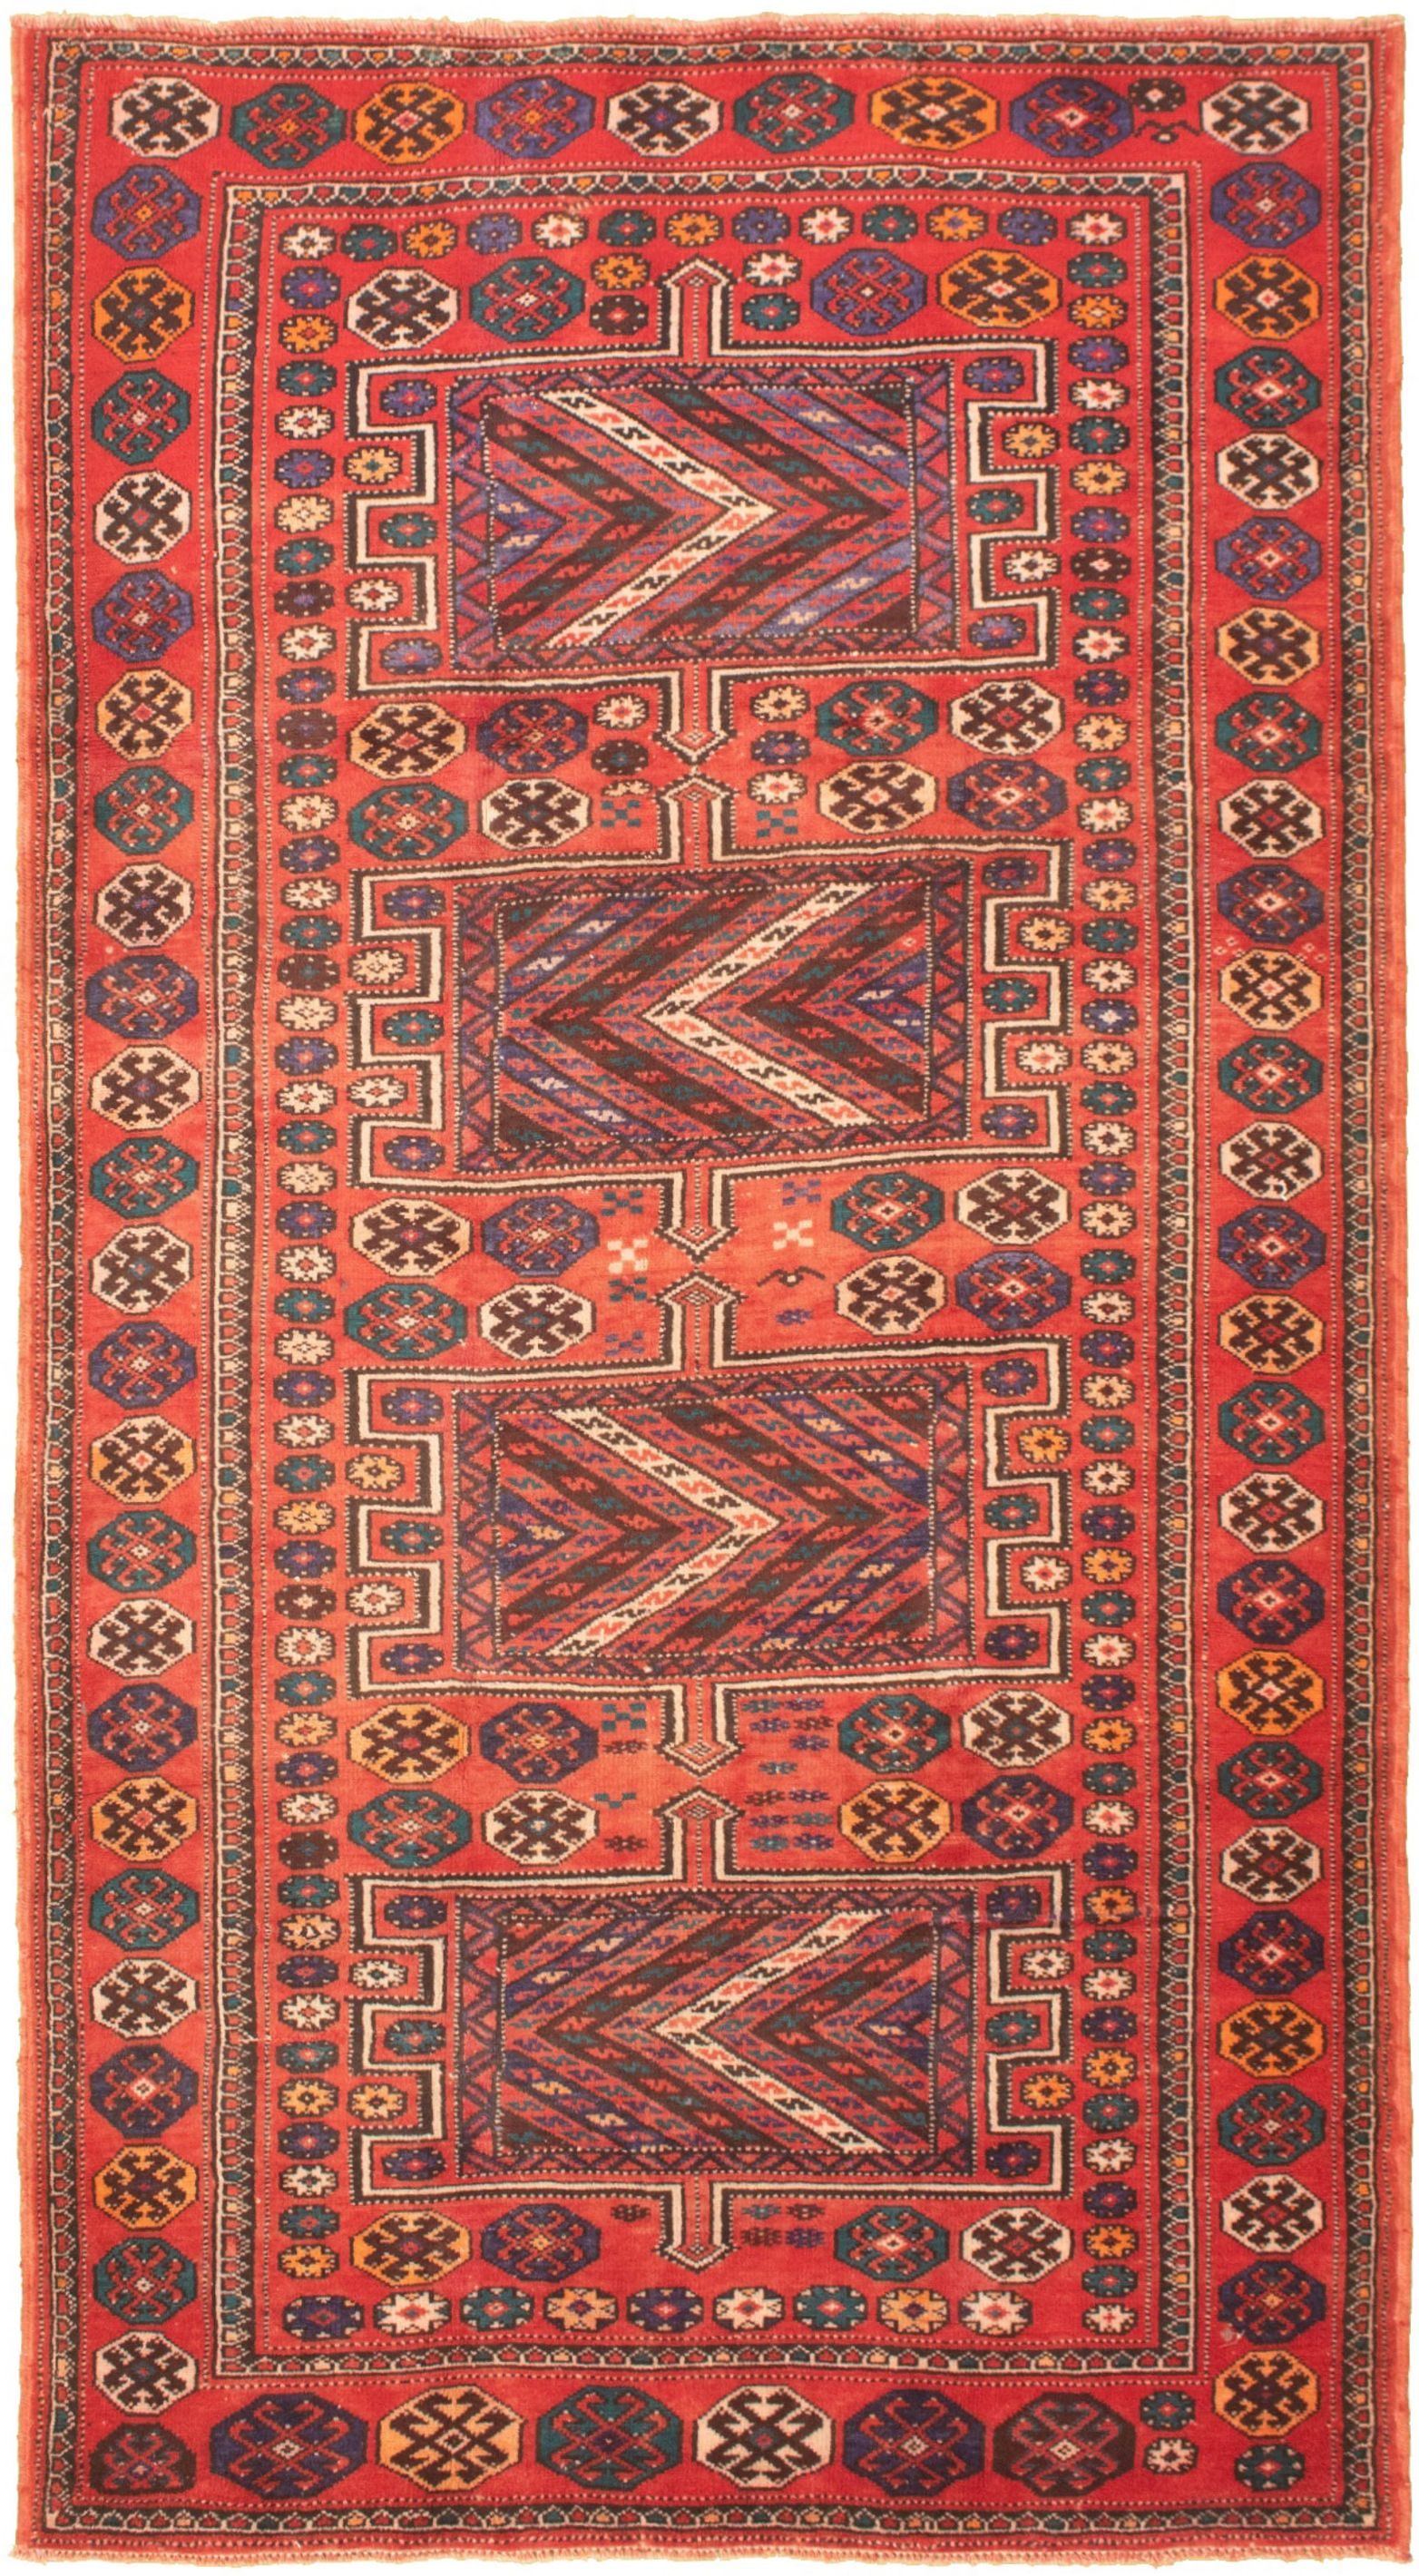 "Hand-knotted Authentic Turkish Dark Copper Wool Rug 5'0"" x 9'6"" Size: 5'0"" x 9'6"""